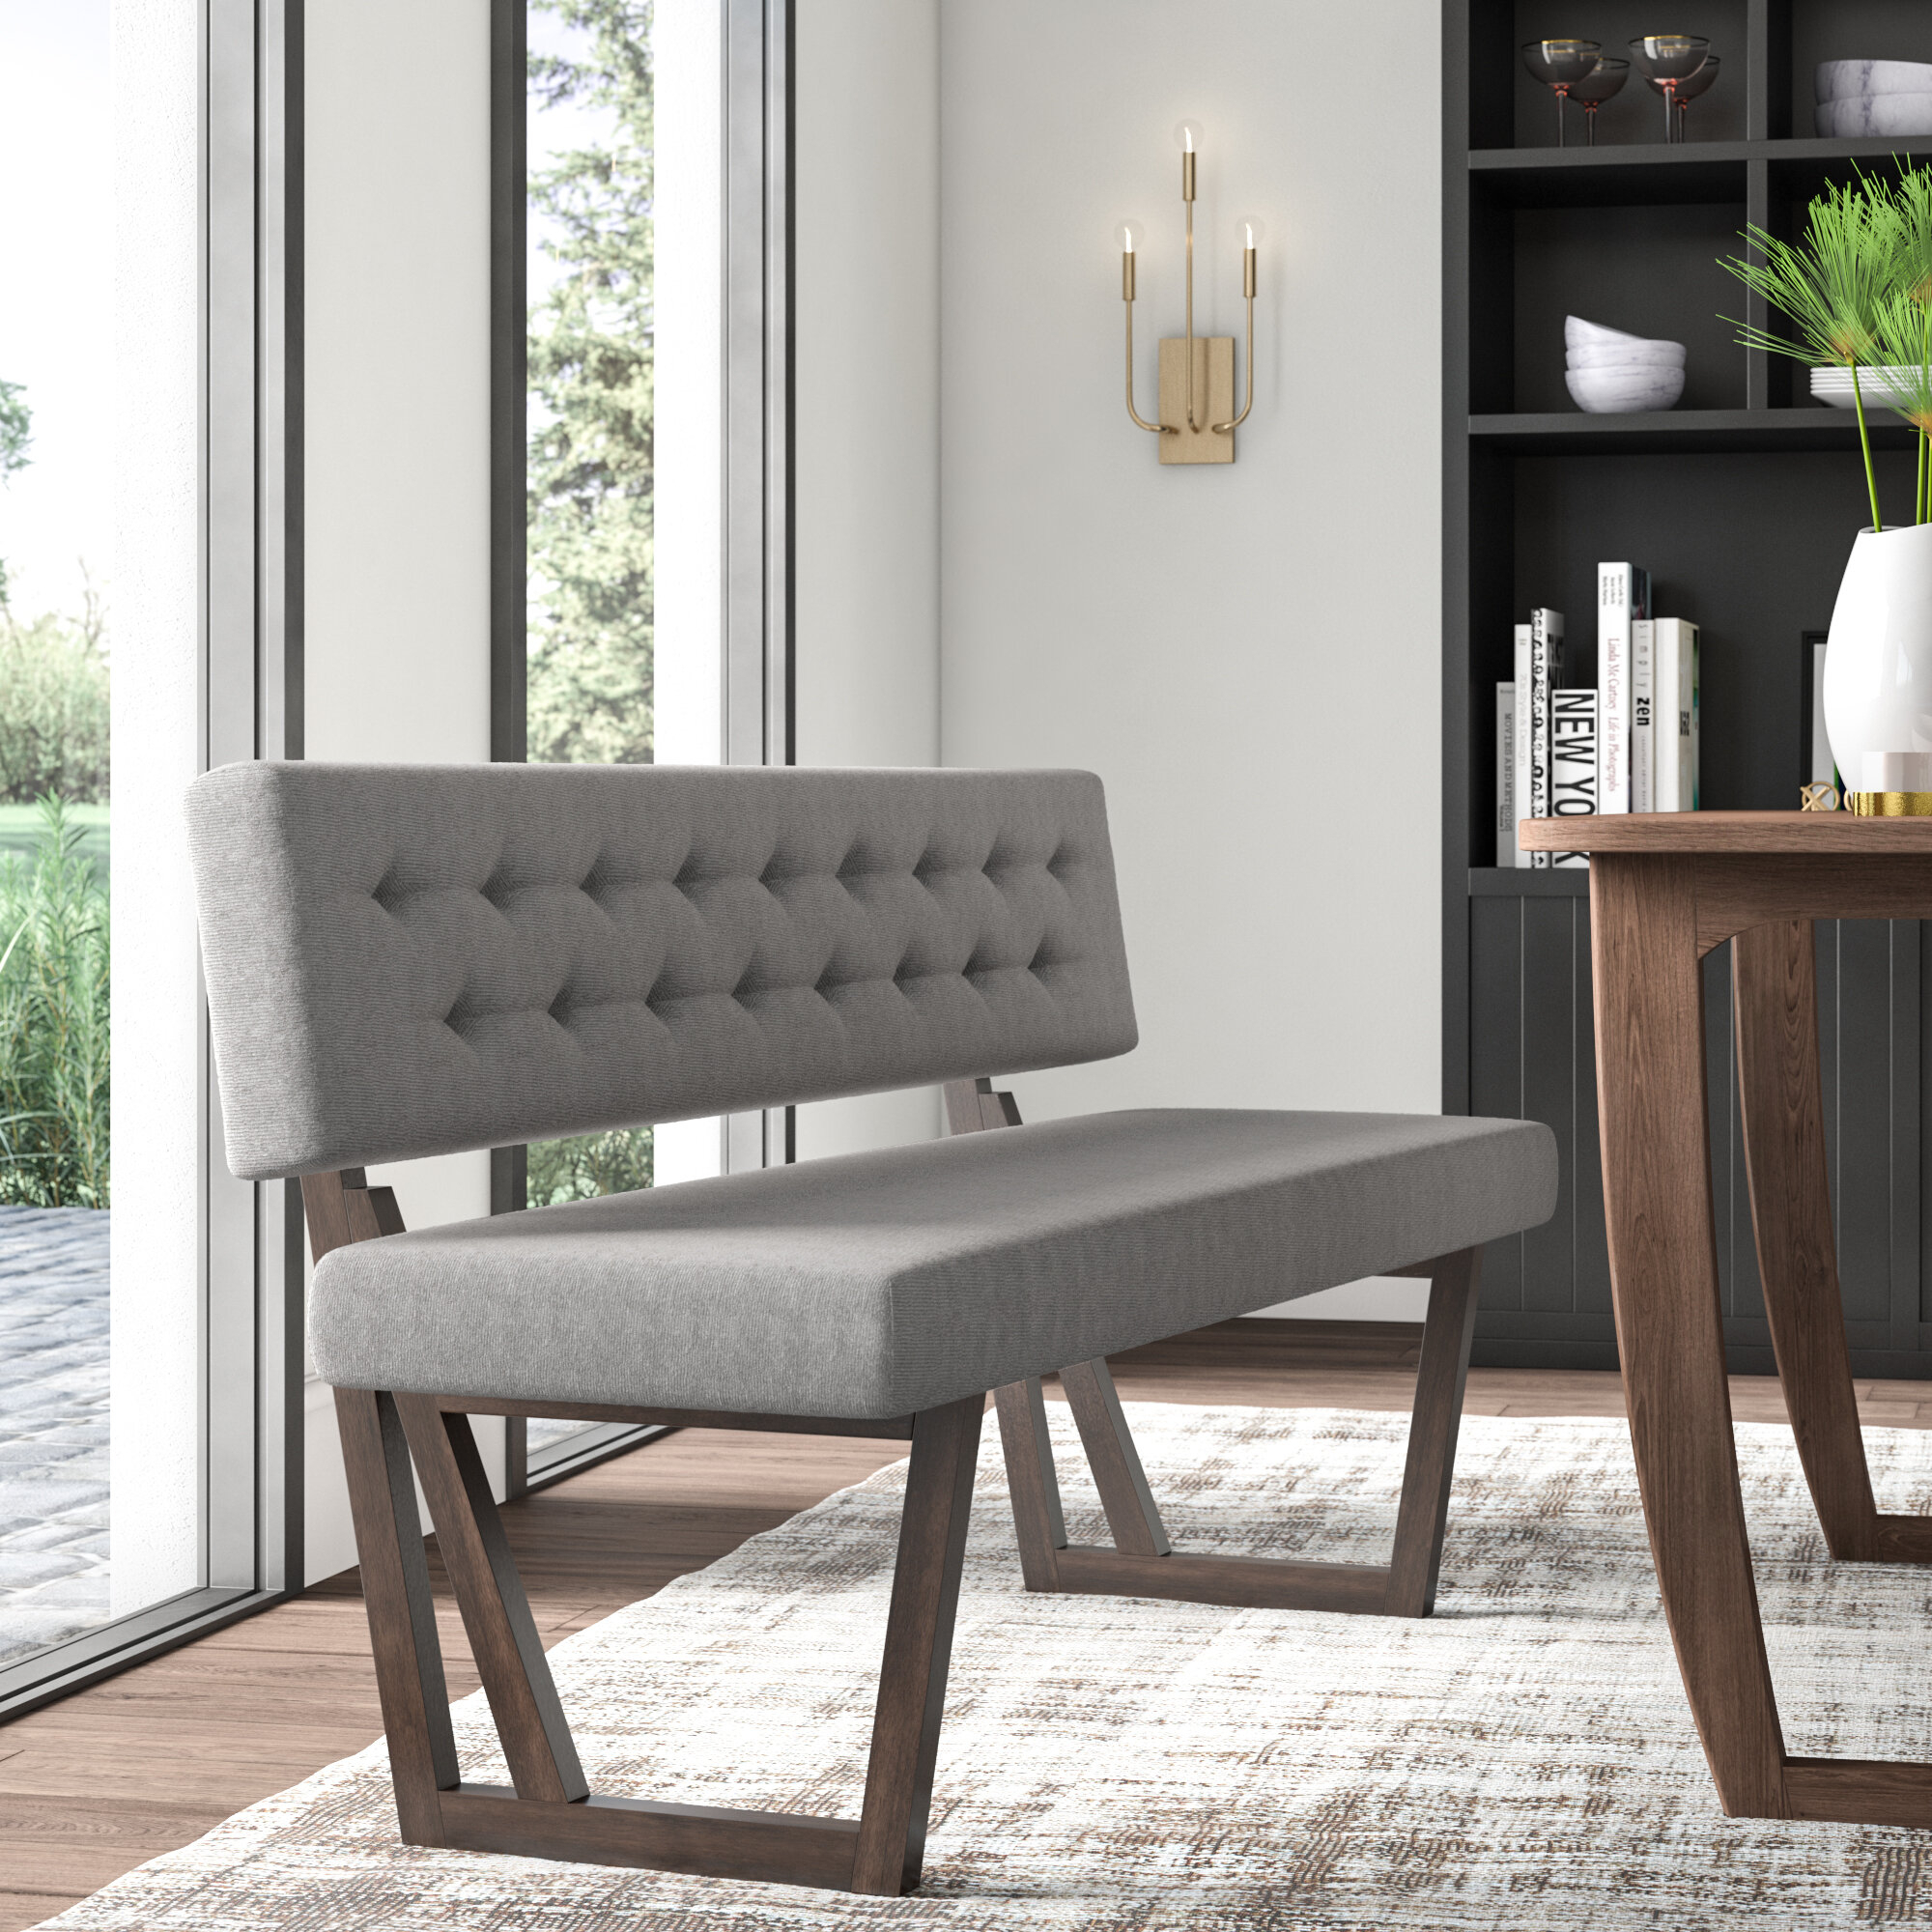 Mukai Upholstered Bench Throughout Most Recent Mukai 5 Piece Dining Sets (View 11 of 20)